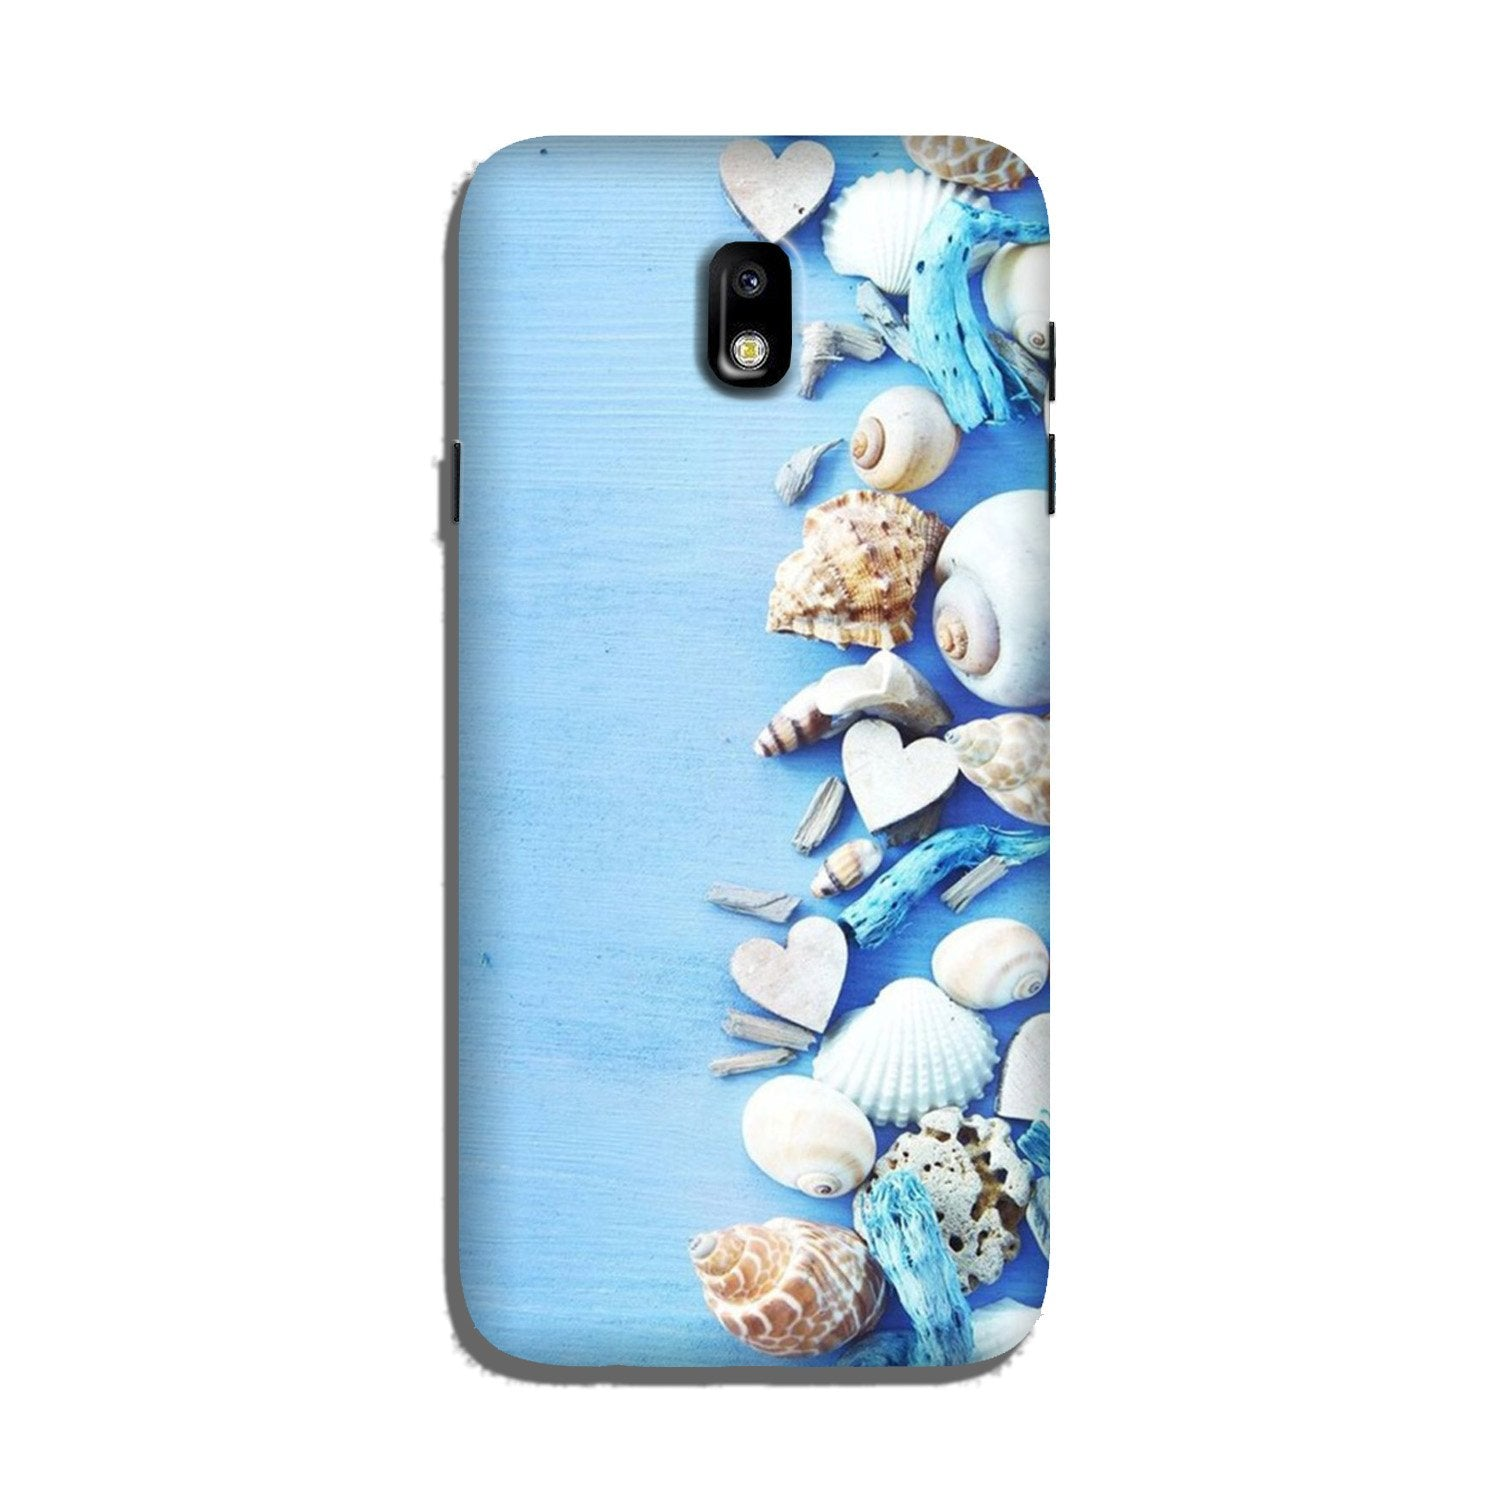 Sea Shells2 Case for Galaxy J7 Pro